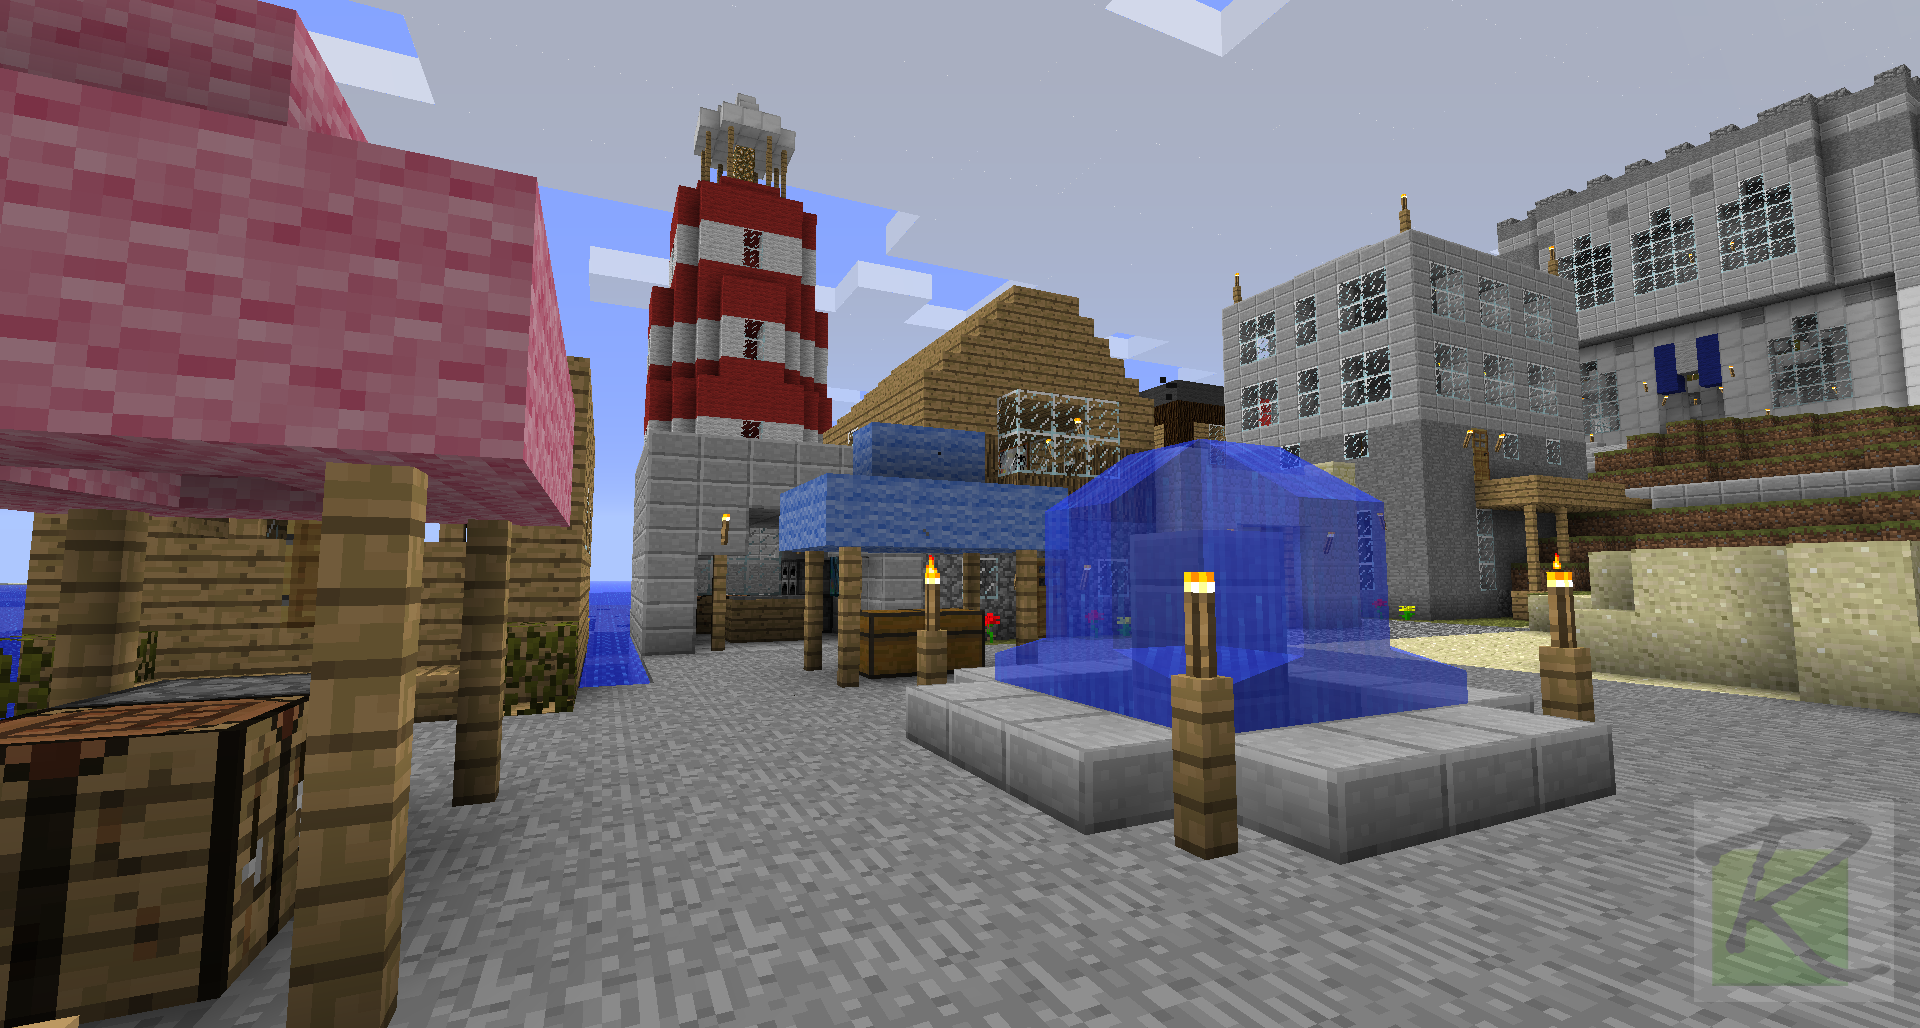 Town Square With Lighthouse And Temple In The Background Minecraft Screenshots A Visual Journal Of Minecraft Gameplay